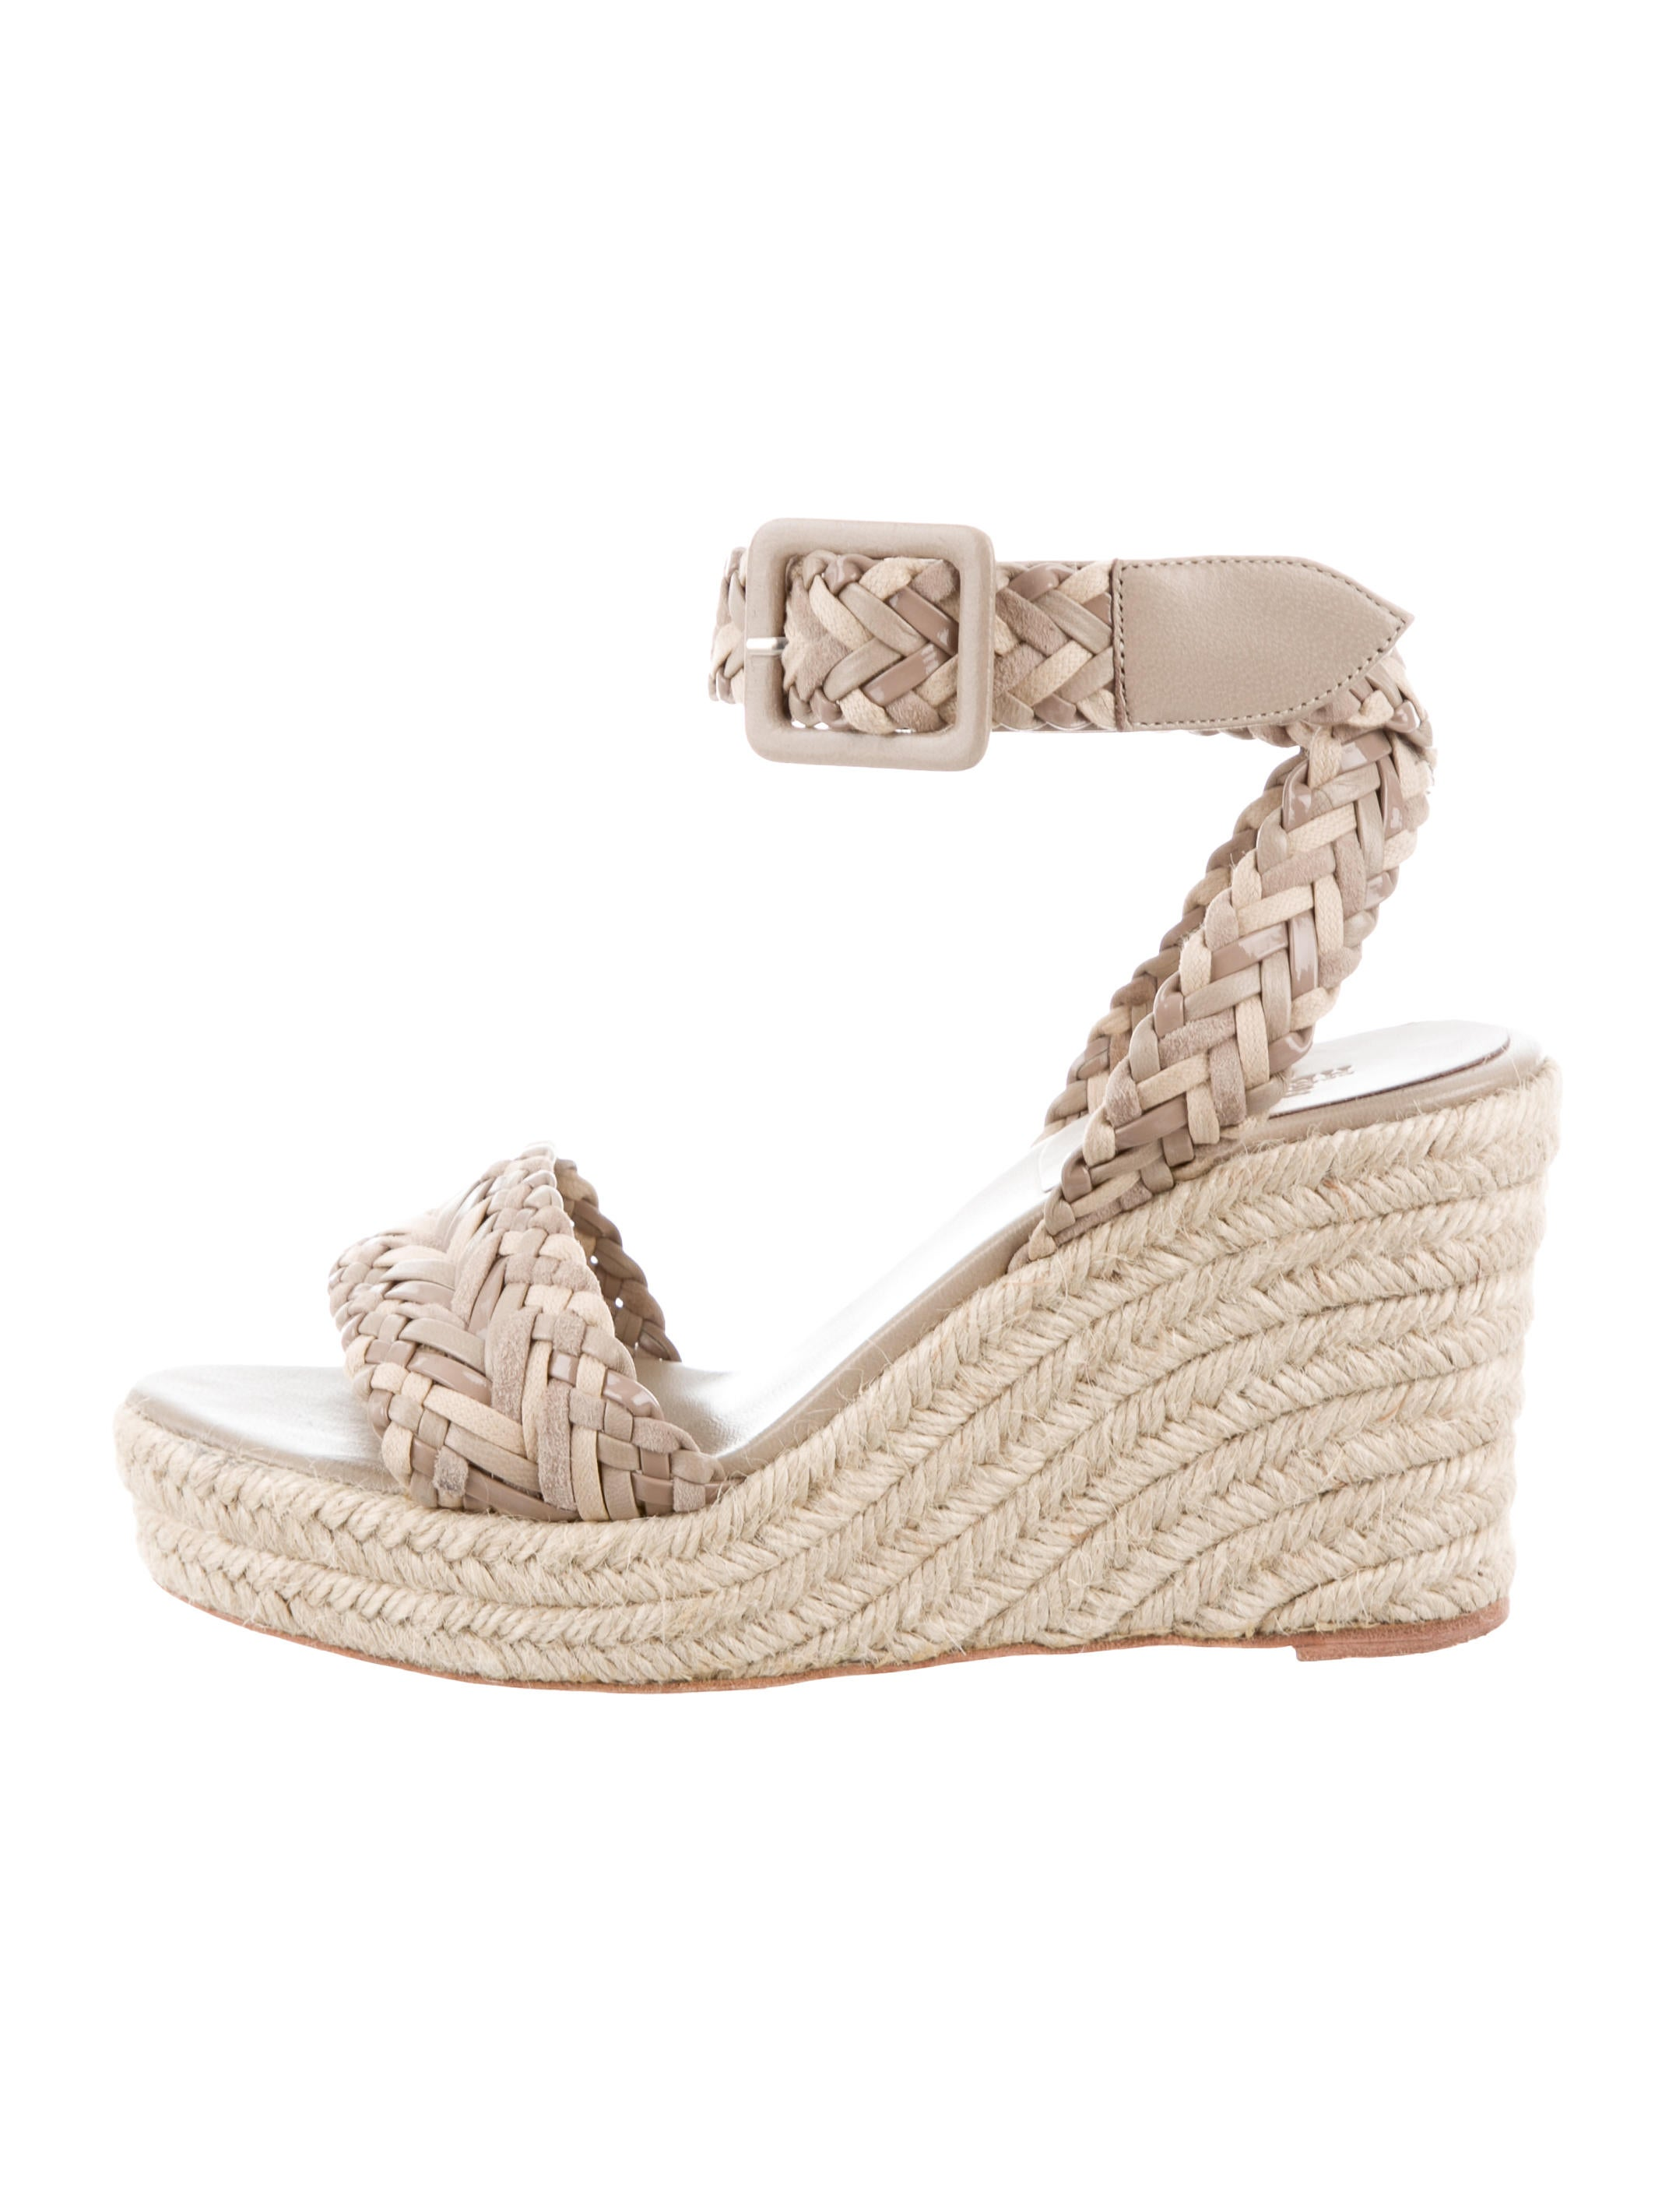 clearance 2015 wholesale price Hermès Woven Espadrille Sandals YG8pt1